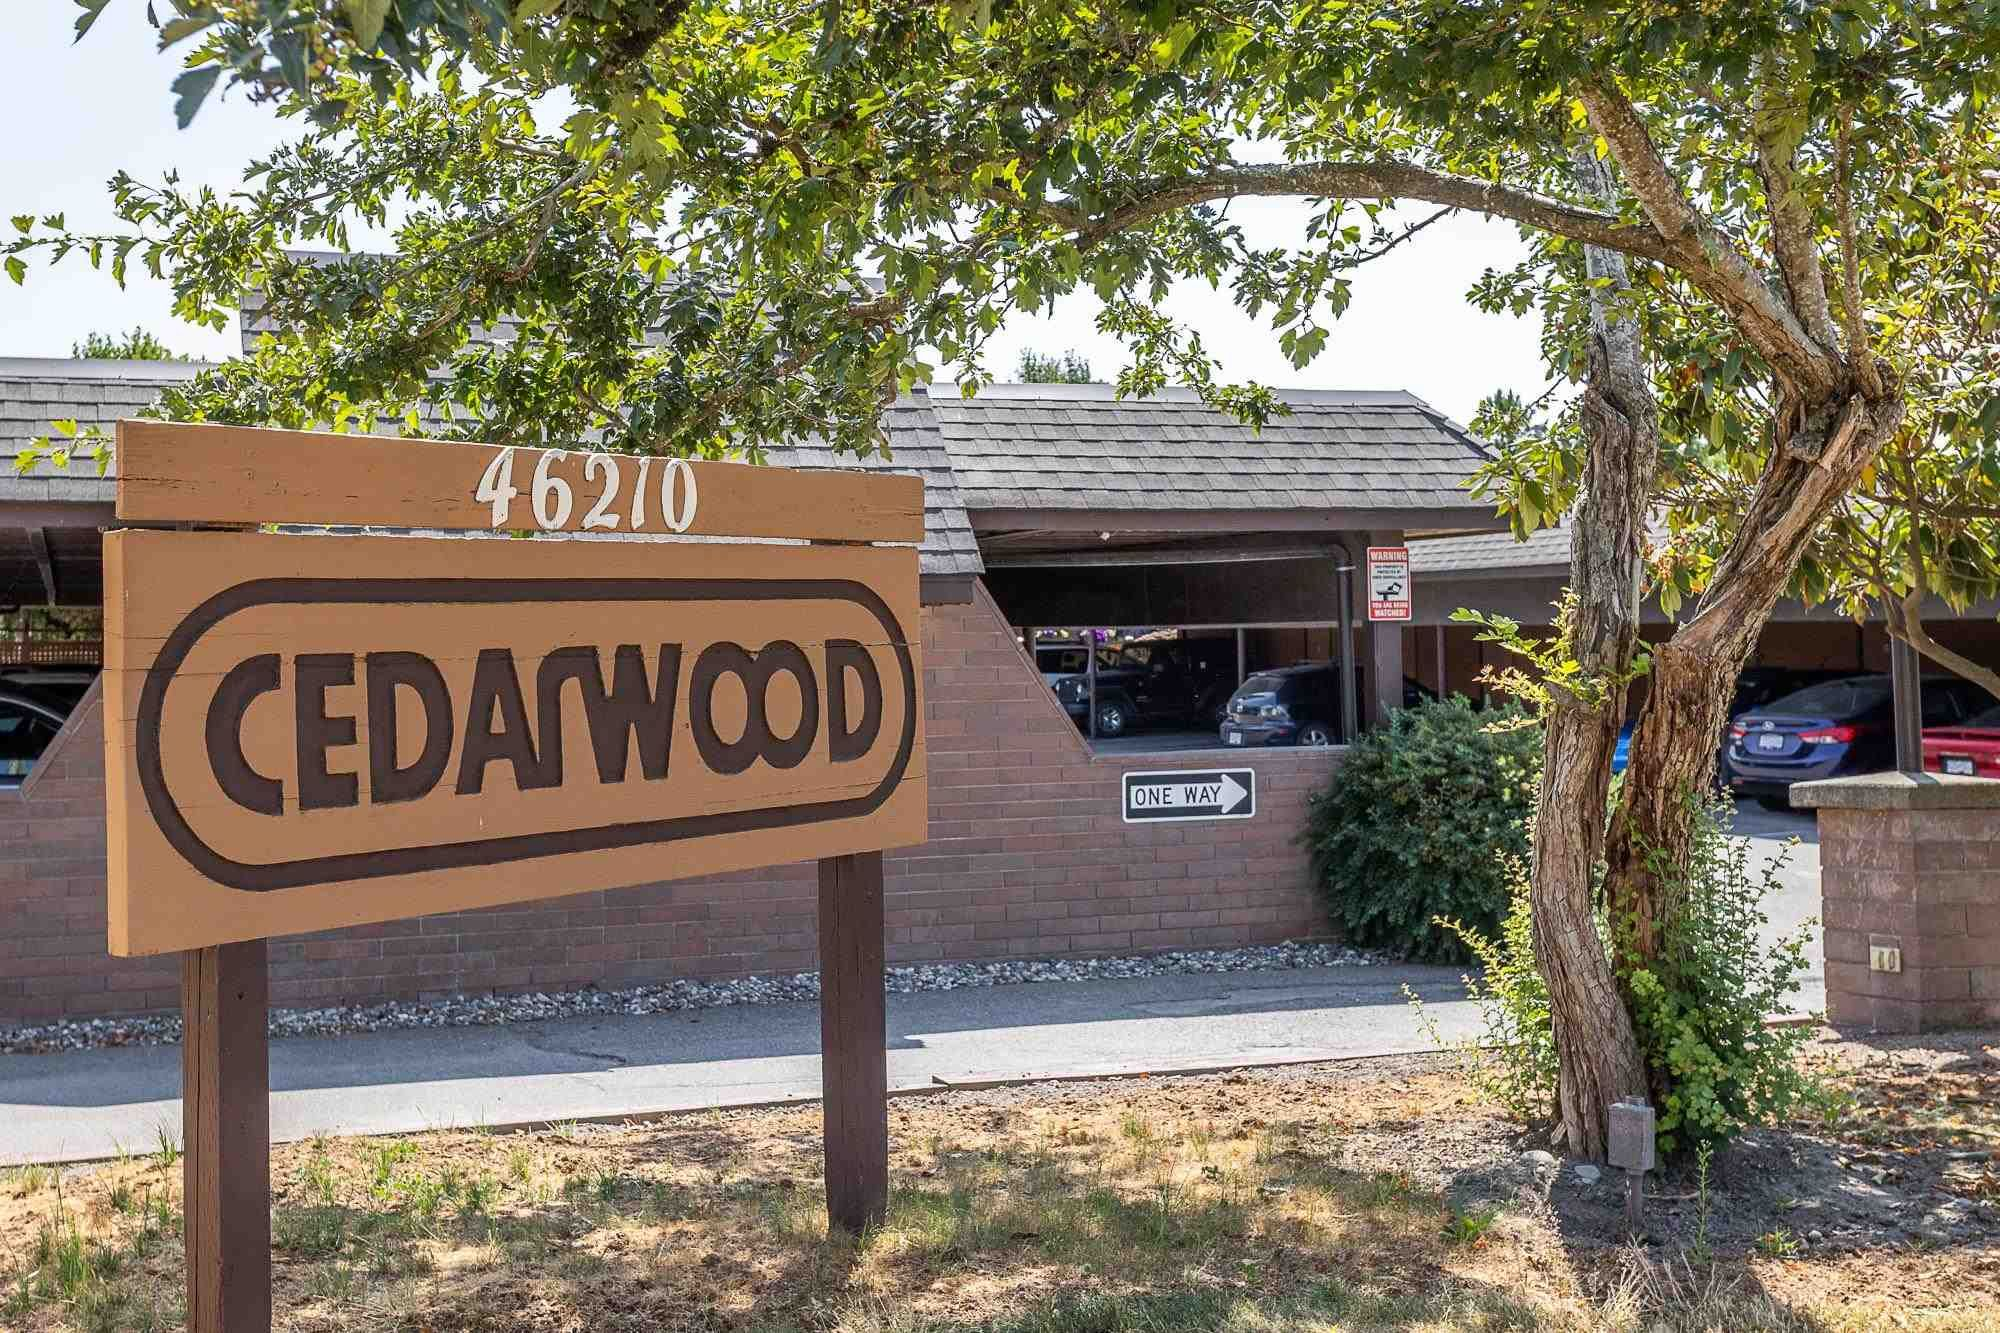 """Main Photo: 108 46210 CHILLIWACK CENTRAL Road in Chilliwack: Chilliwack E Young-Yale Townhouse for sale in """"CEDARWOOD"""" : MLS®# R2602109"""